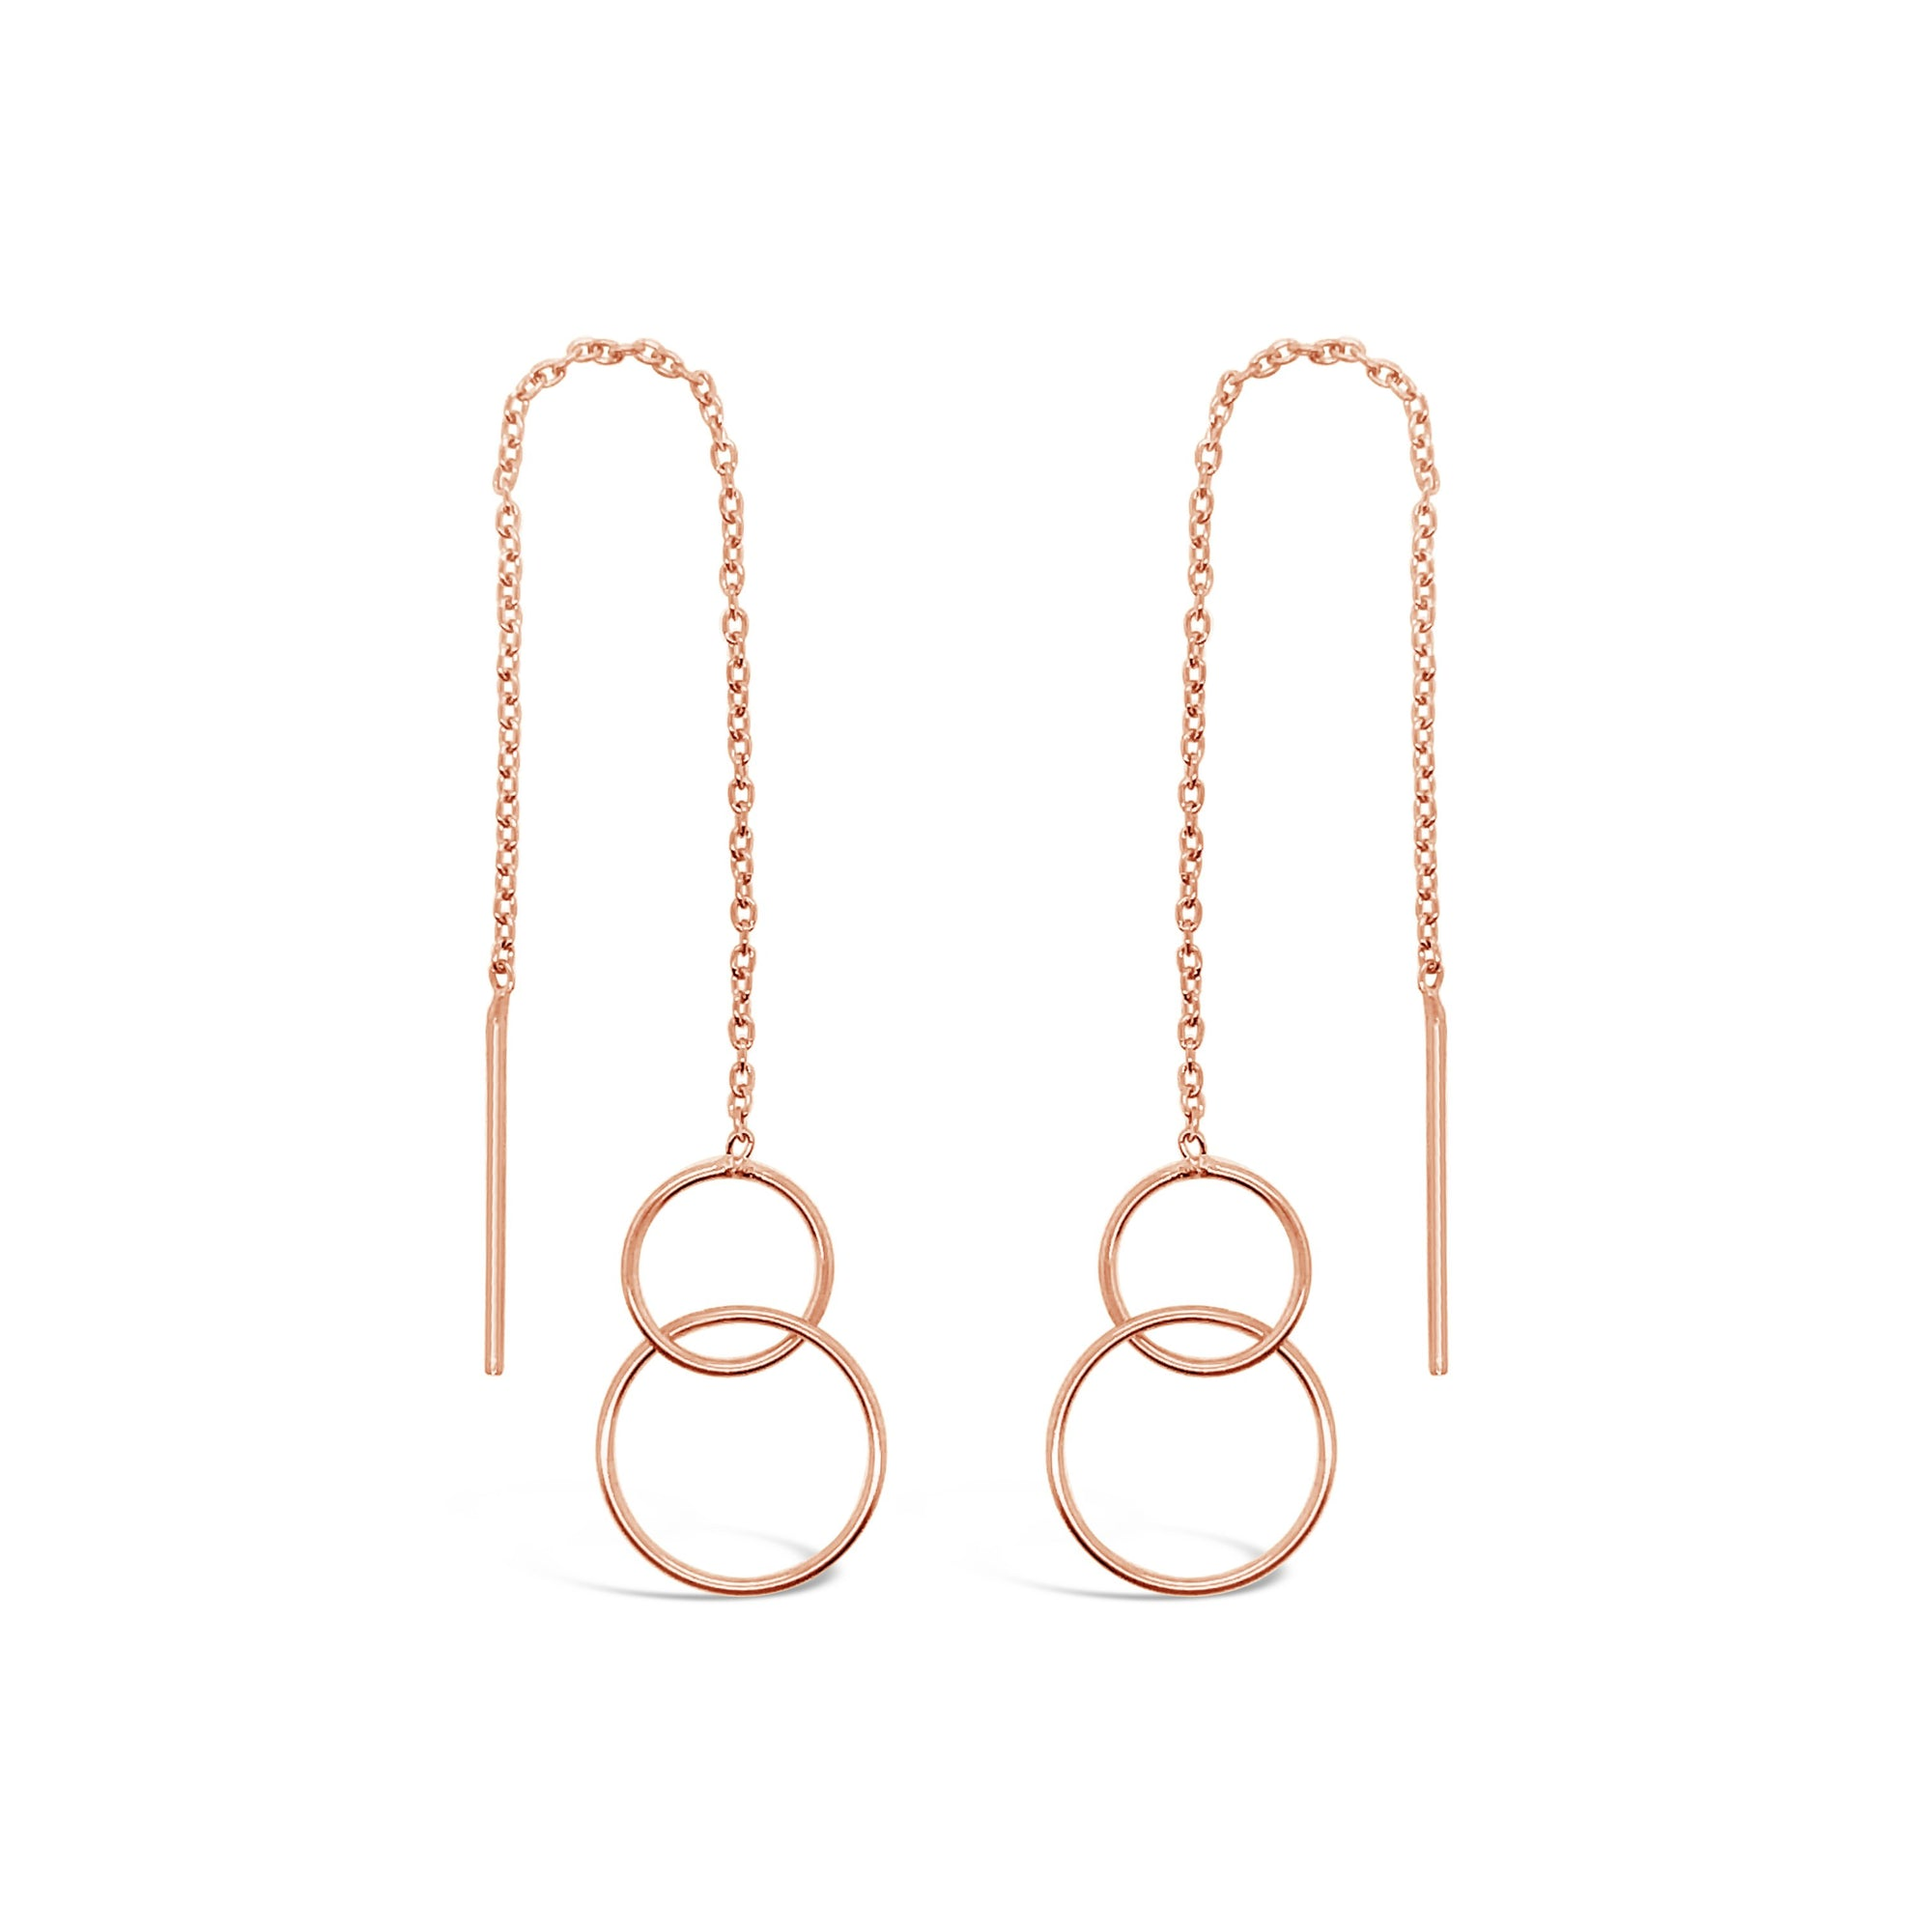 Duo Double Circle Thread Earrings Duo Jewellery